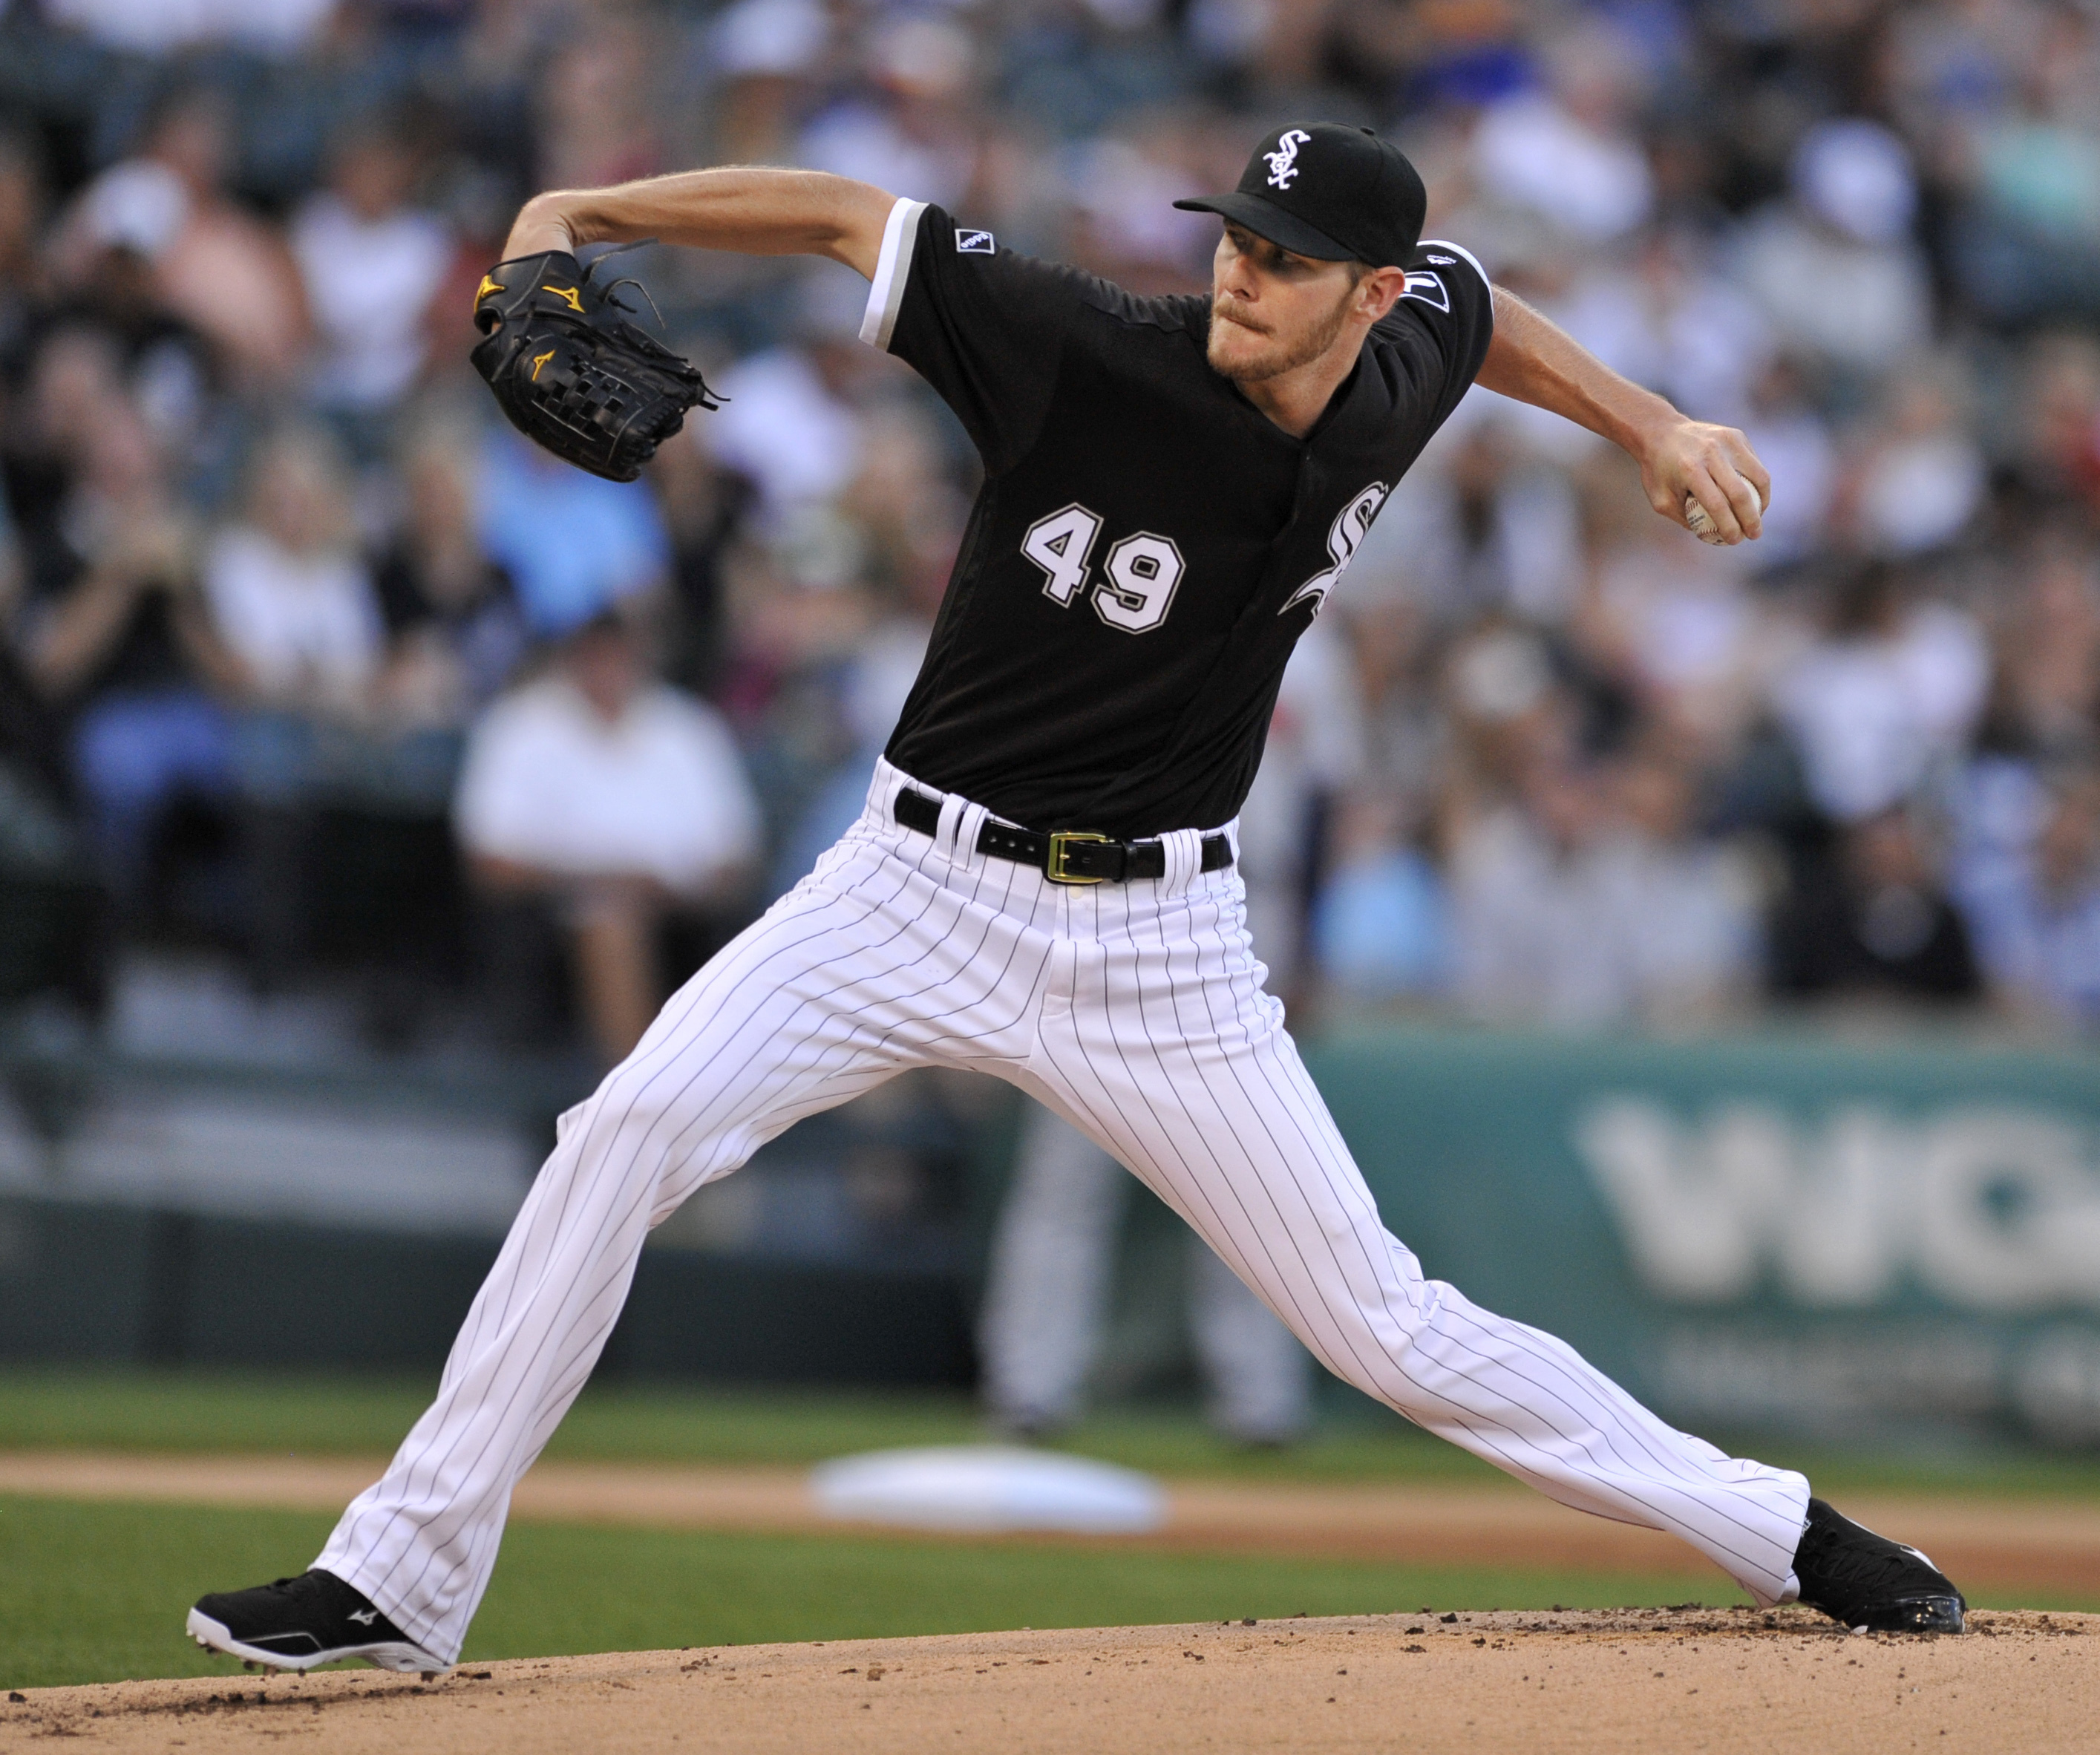 Chicago White Sox starter Chris Sale delivers a pitch during the first inning of an interleague baseball game against the Atlanta Braves Friday, July 8, 2016, in Chicago. (AP Photo/Paul Beaty)